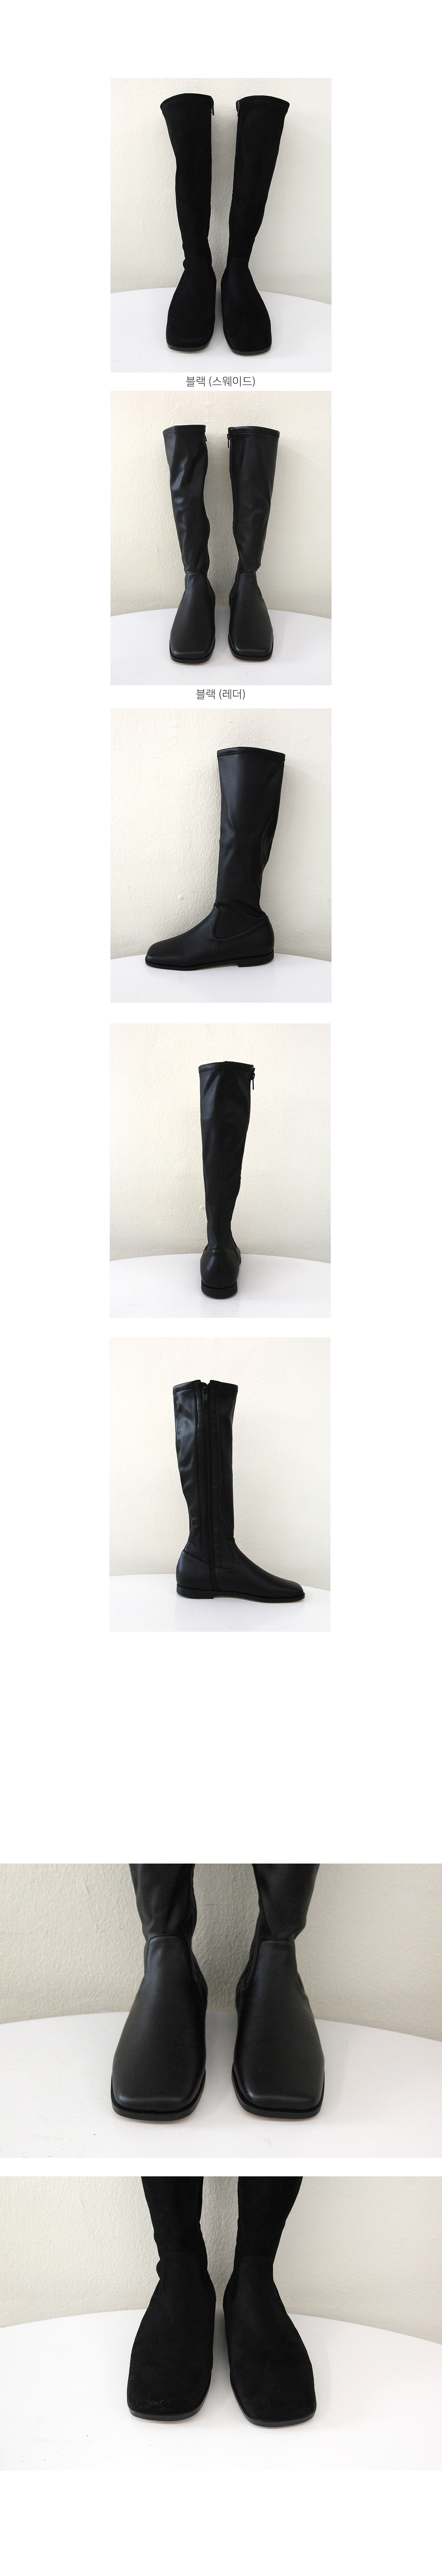 Neo boots